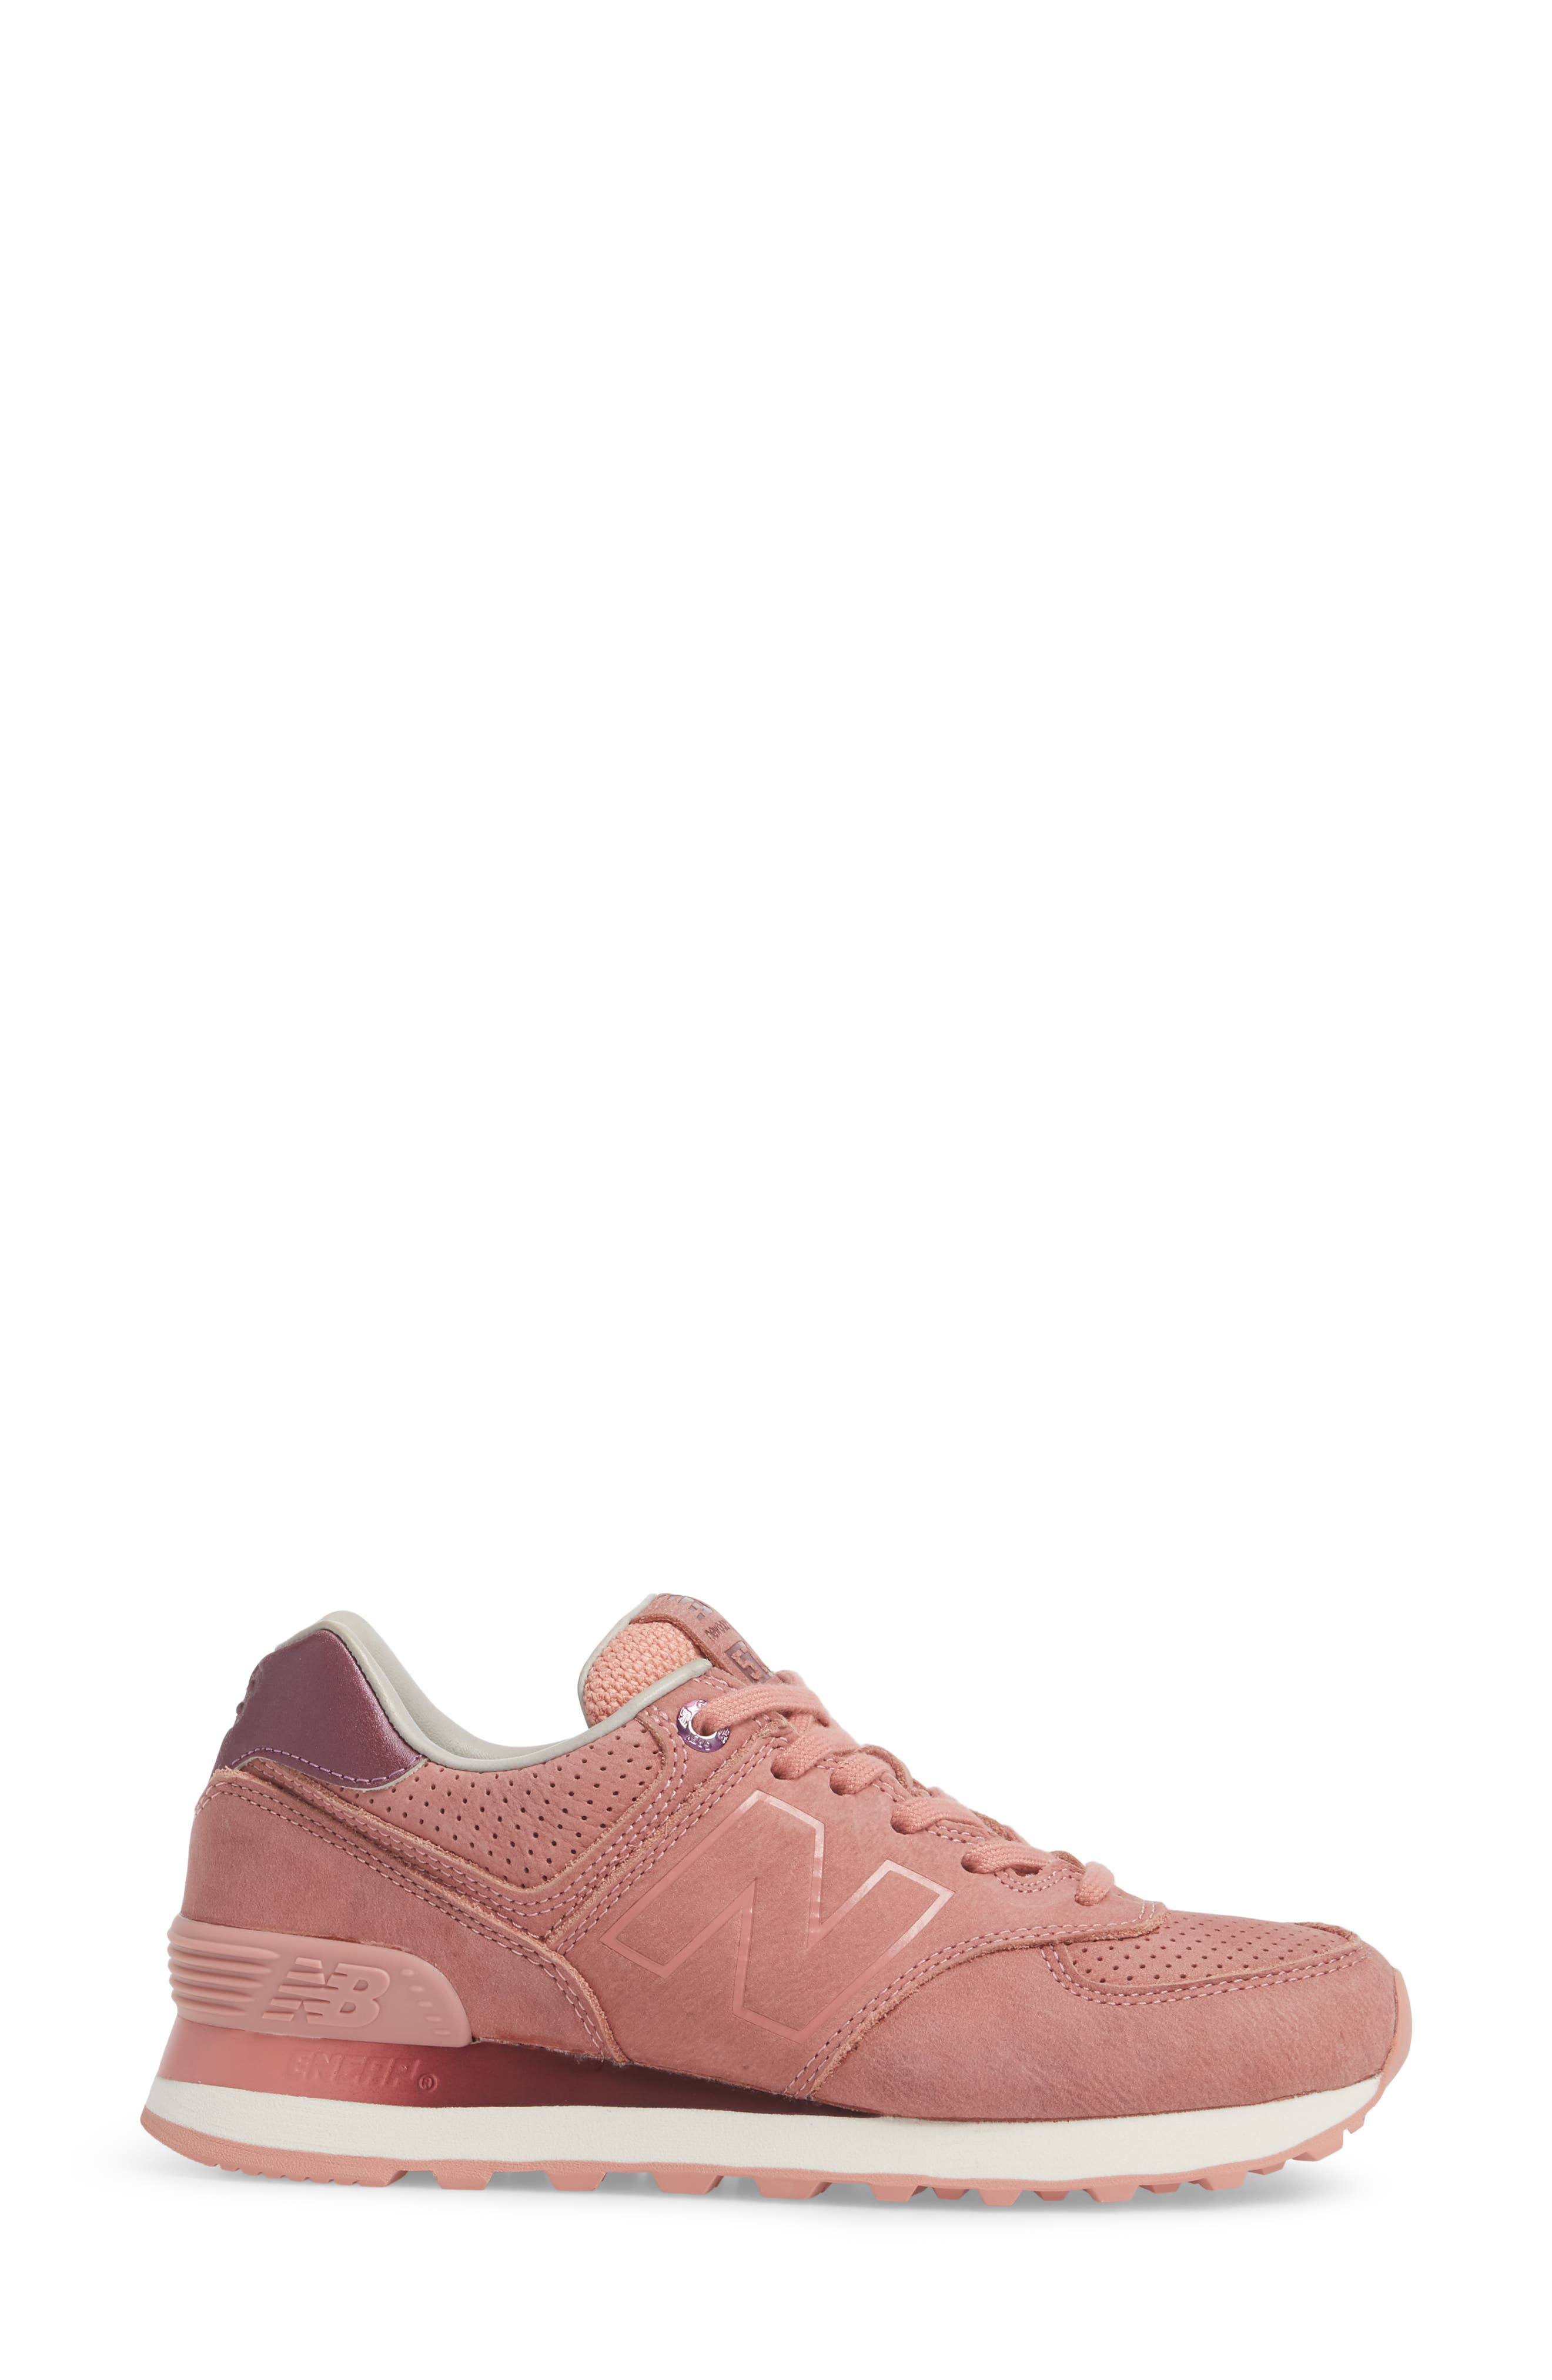 574 Sneaker,                             Alternate thumbnail 3, color,                             Dusted Peach